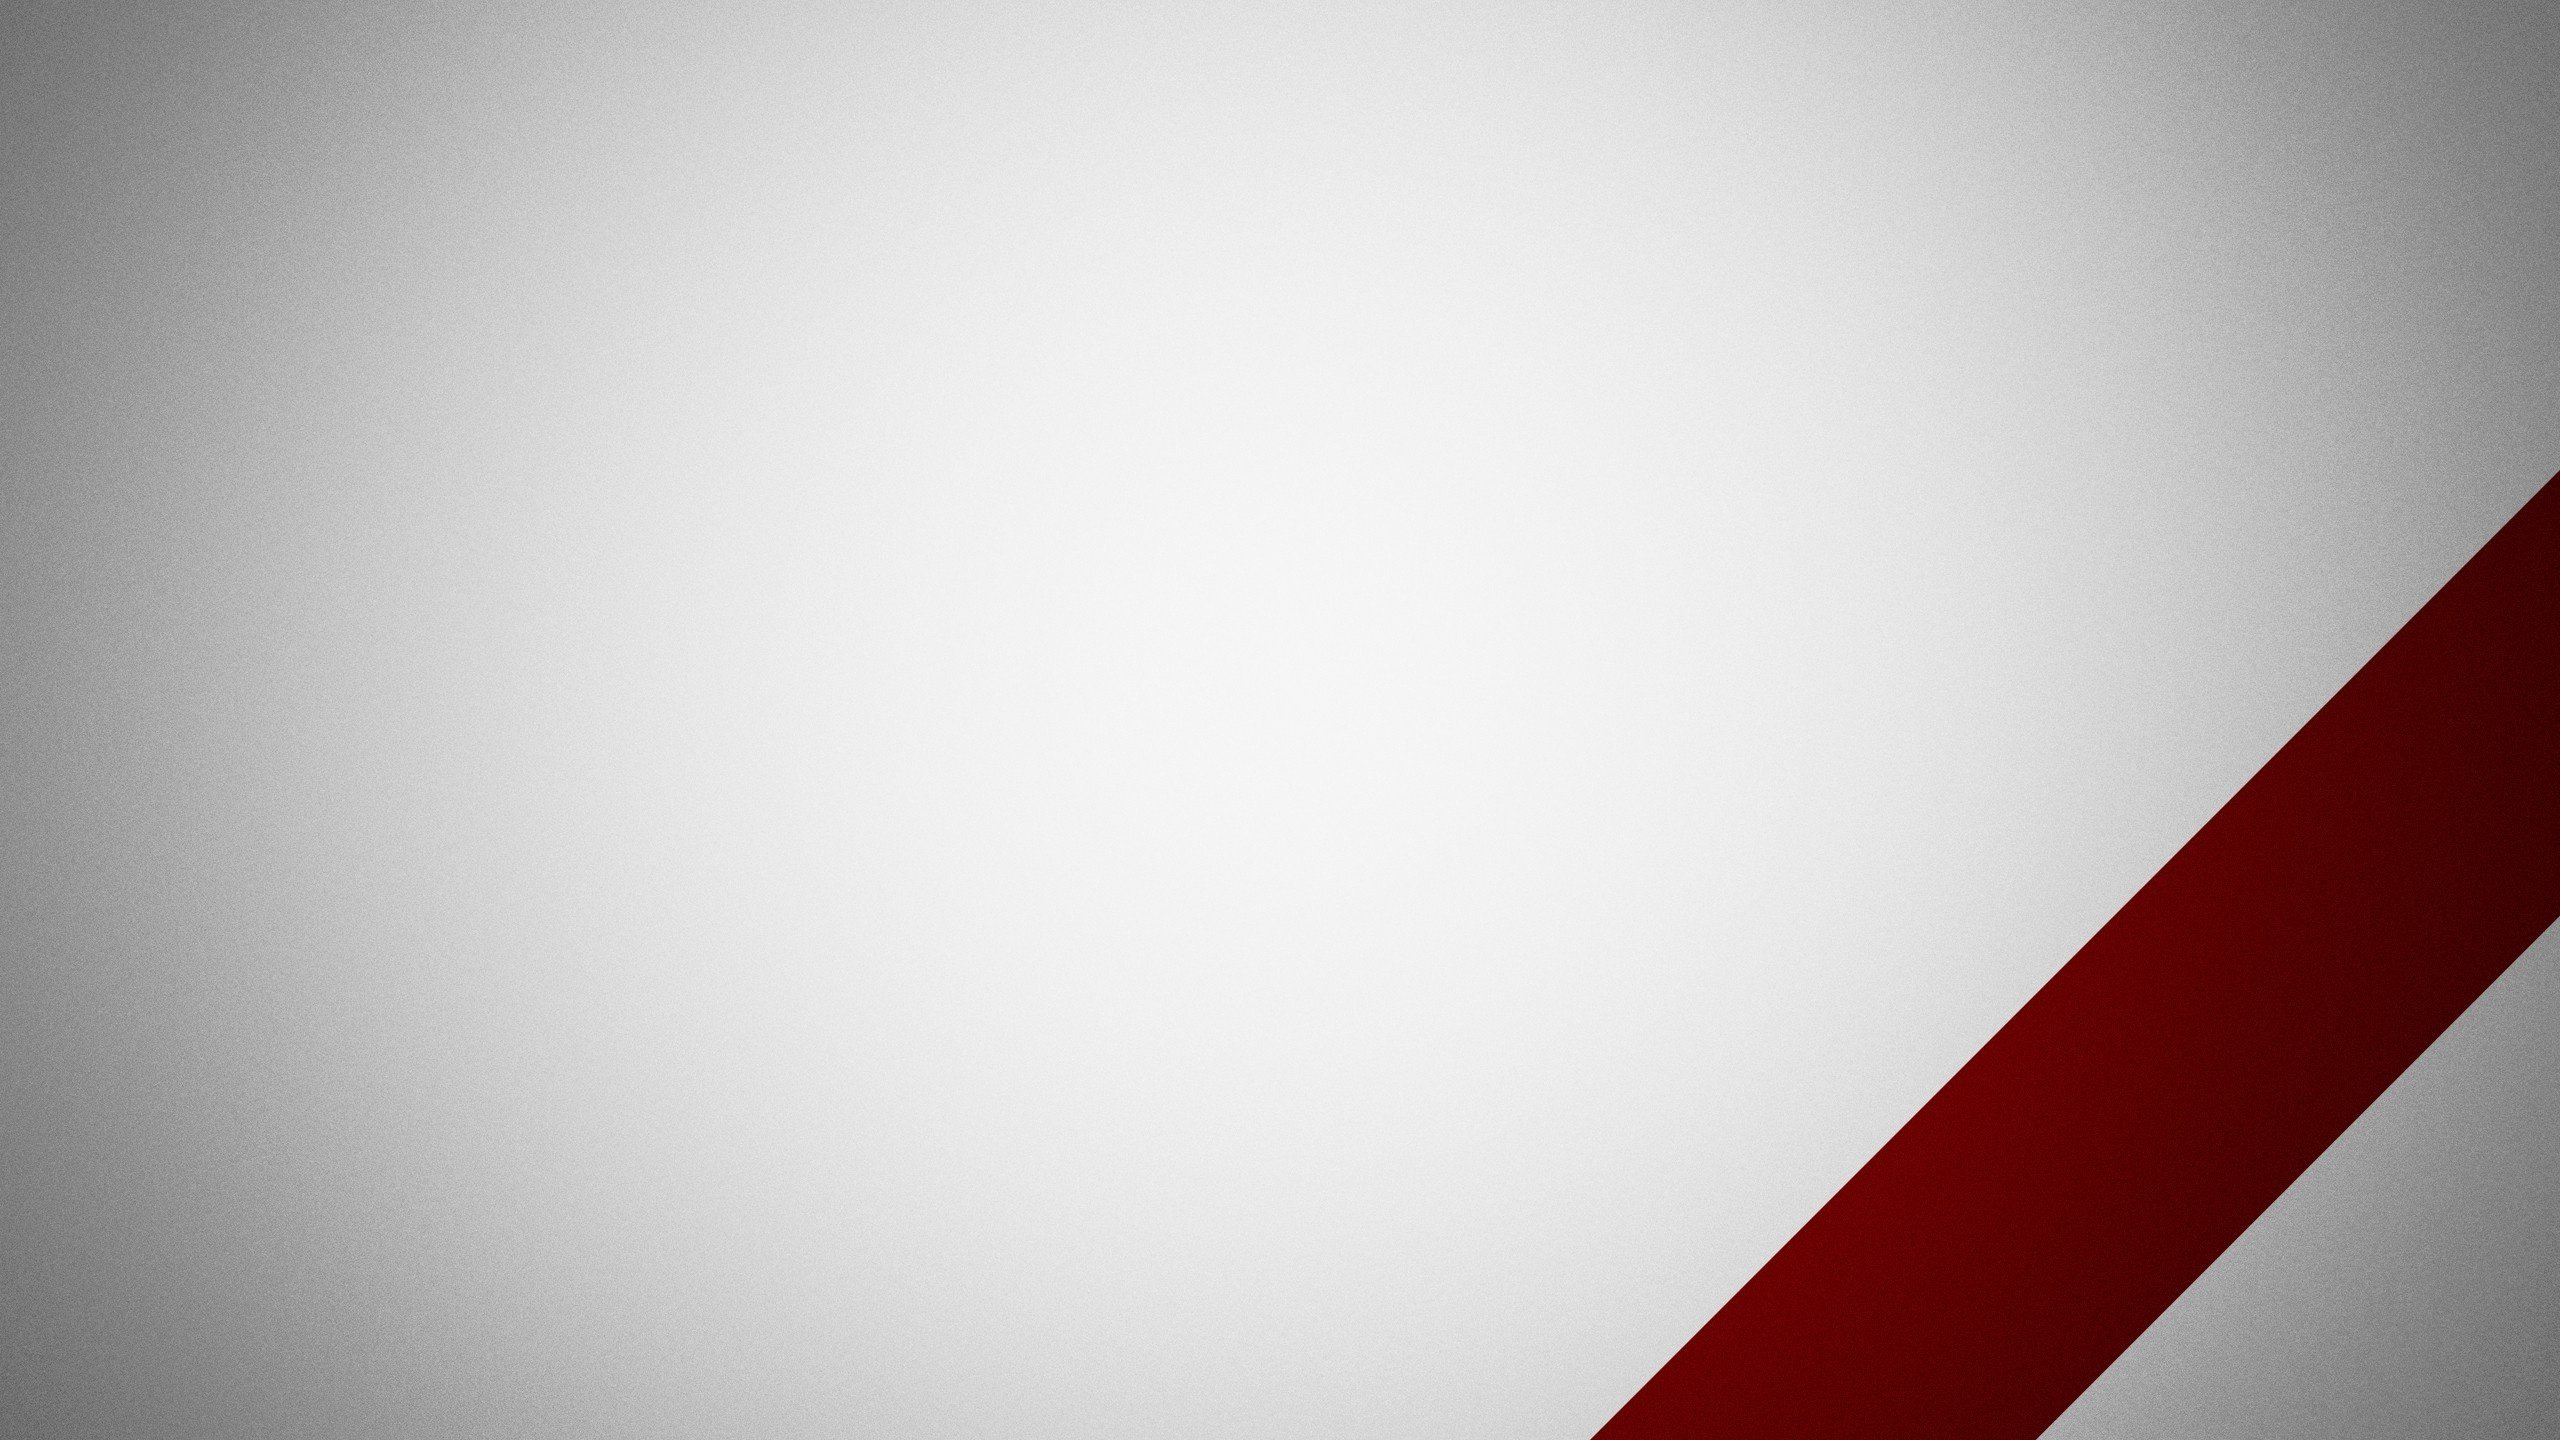 [48+] Red and White Wallpapers on WallpaperSafari